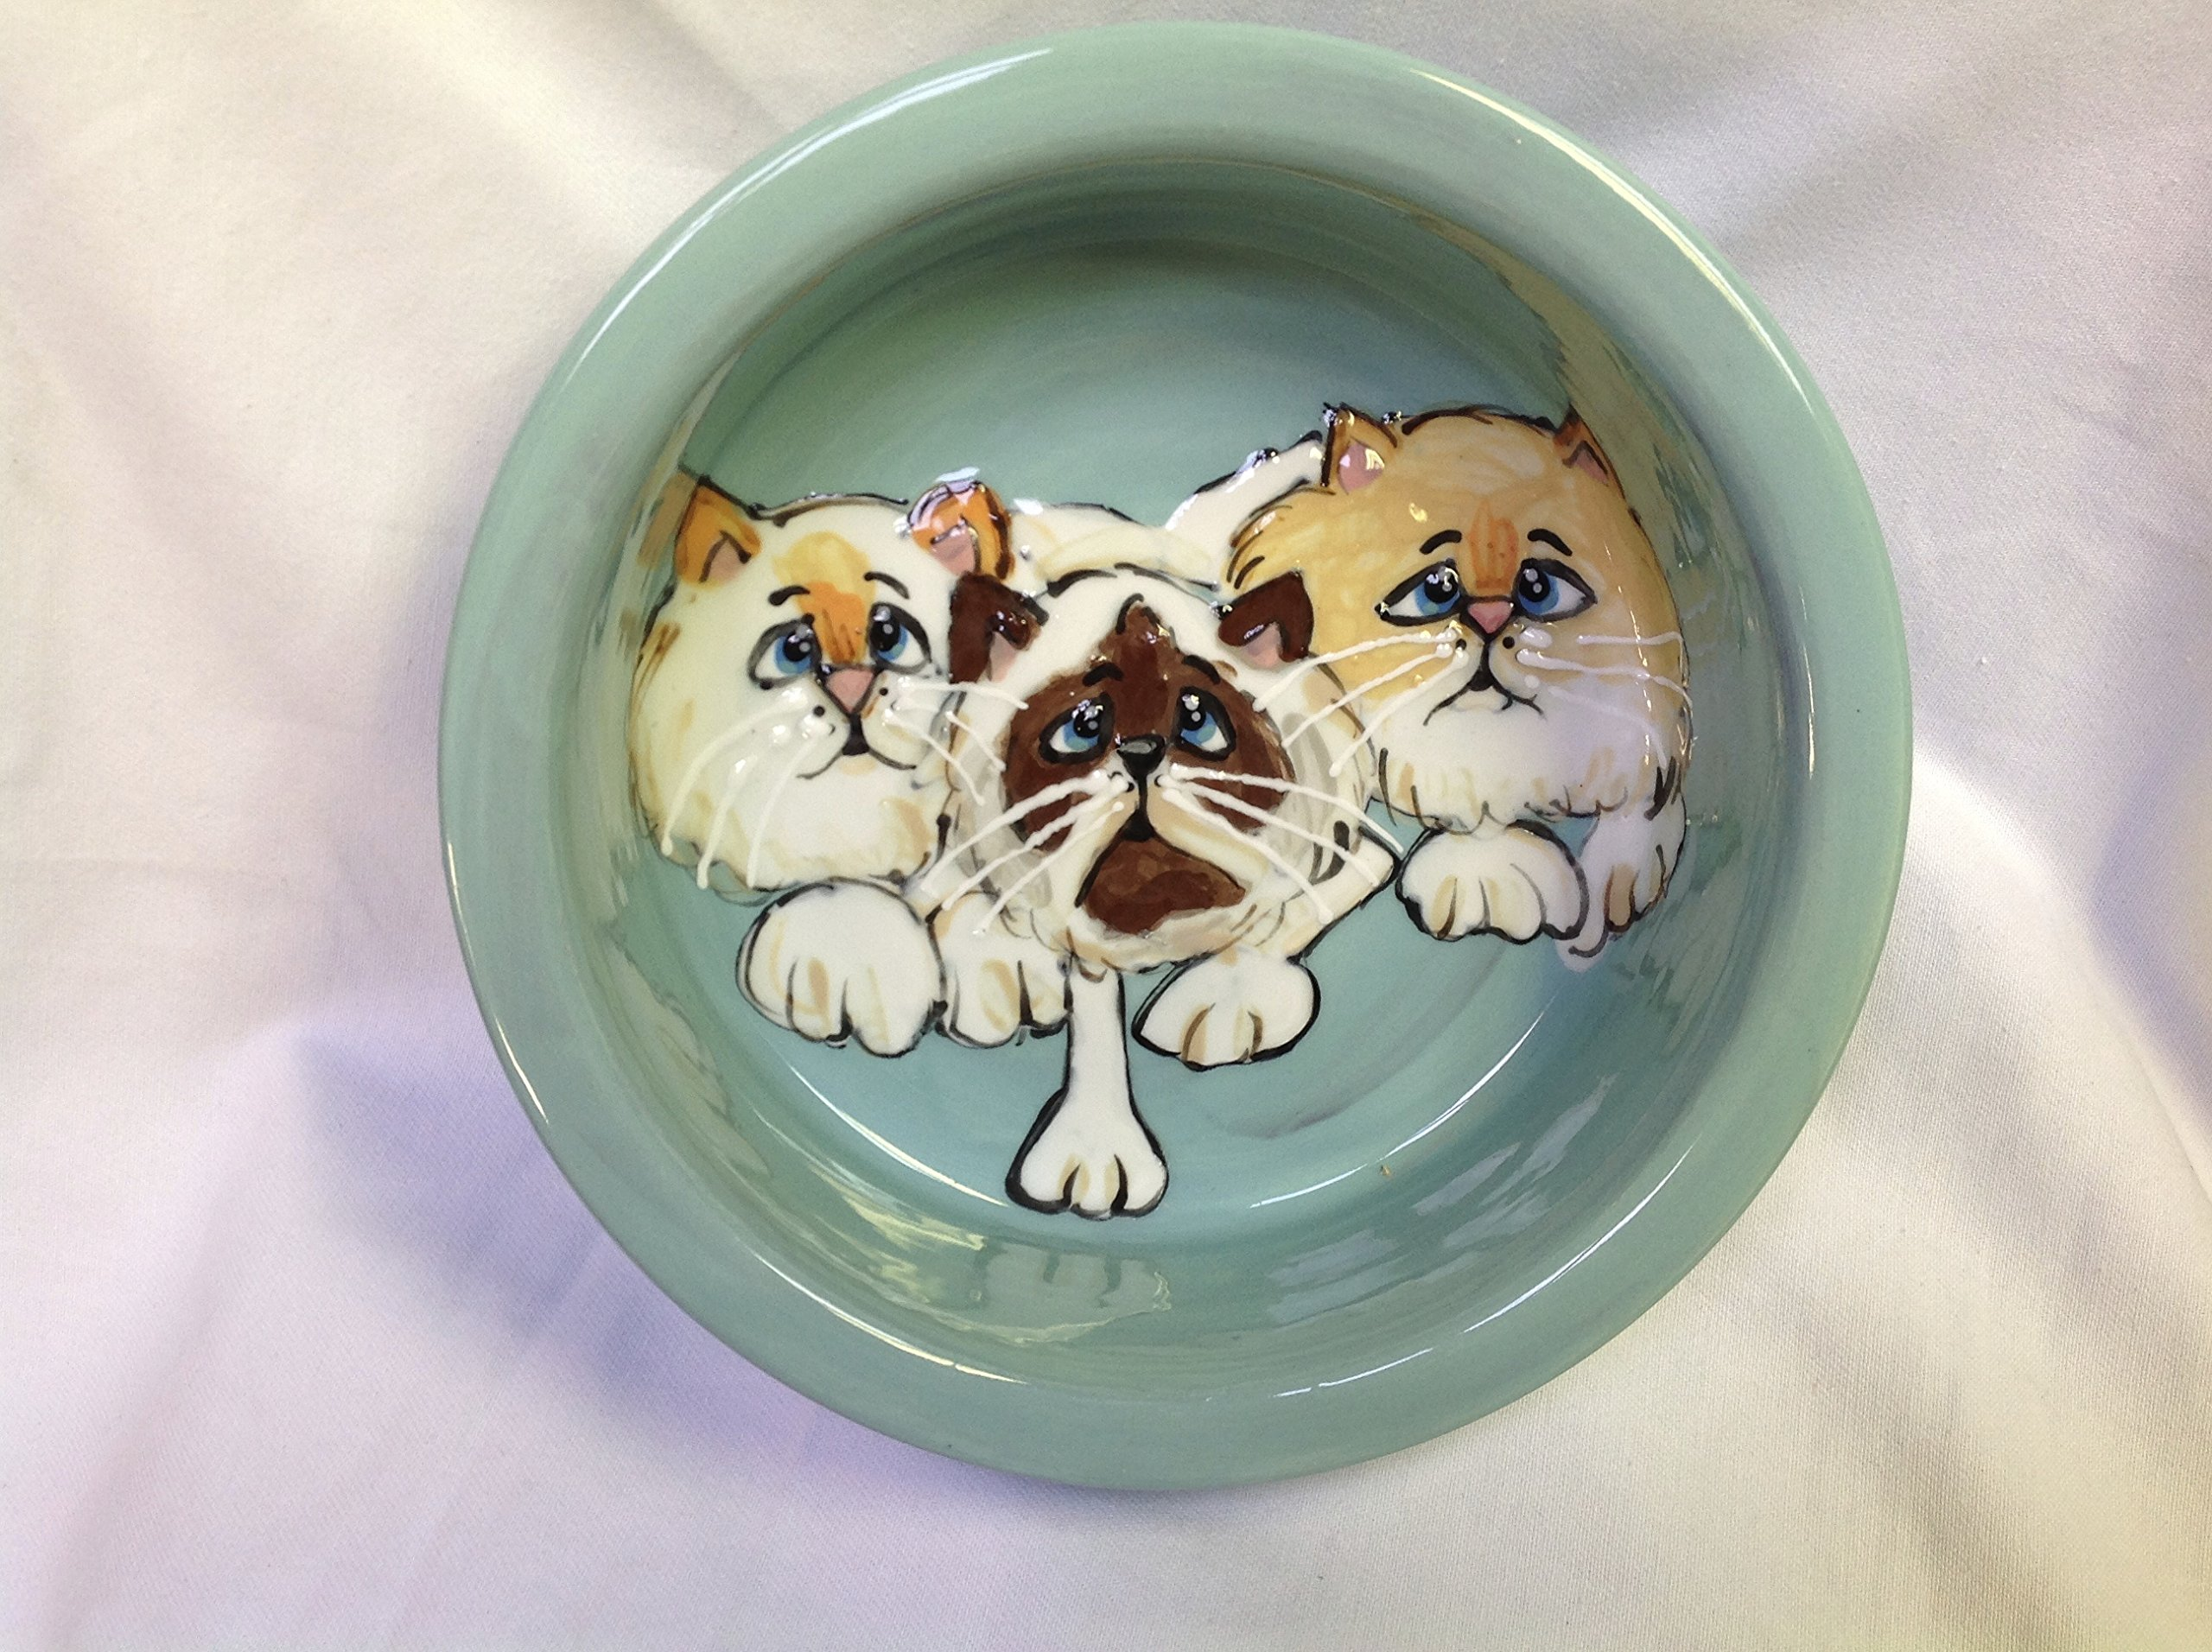 Cat 8''/6'' Pet Bowls for Food/Water. Personalized at no Charge. Signed by Artist, Debby Carman.